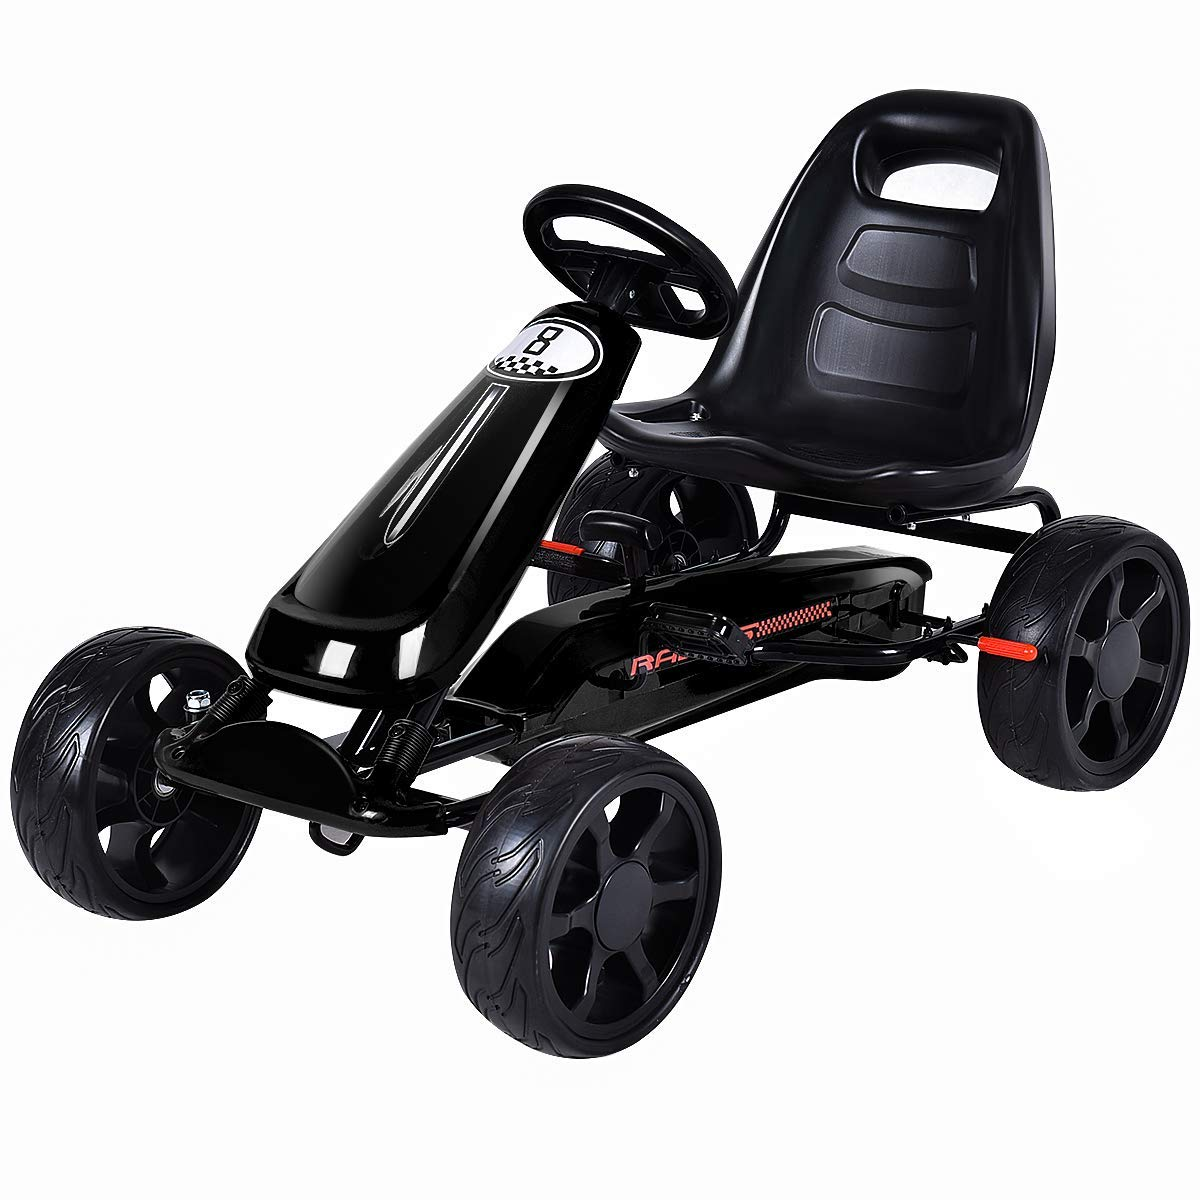 Costzon Go Kart, 4 Wheel Powered Ride On Toy, Kids' Pedal Cars for Outdoor, Racer Pedal Car with Clutch, Brake, EVA Rubber Tires, Adjustable Seat (Black Go Kart)